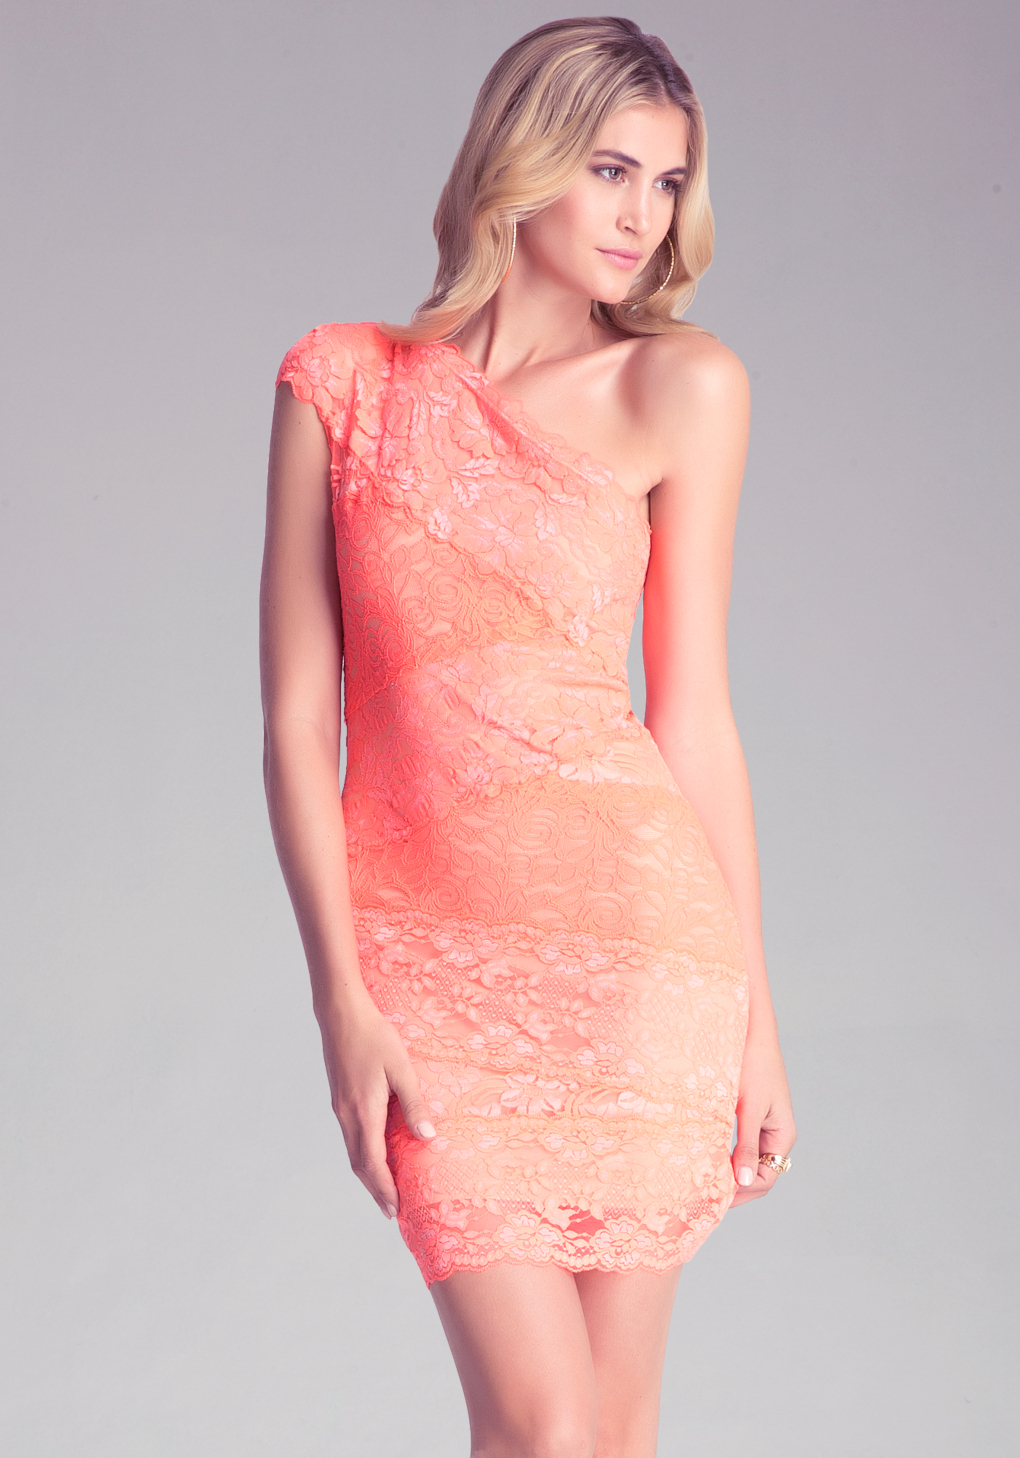 a98945df437 Bebe Lace One Shoulder Dress in Orange - Lyst